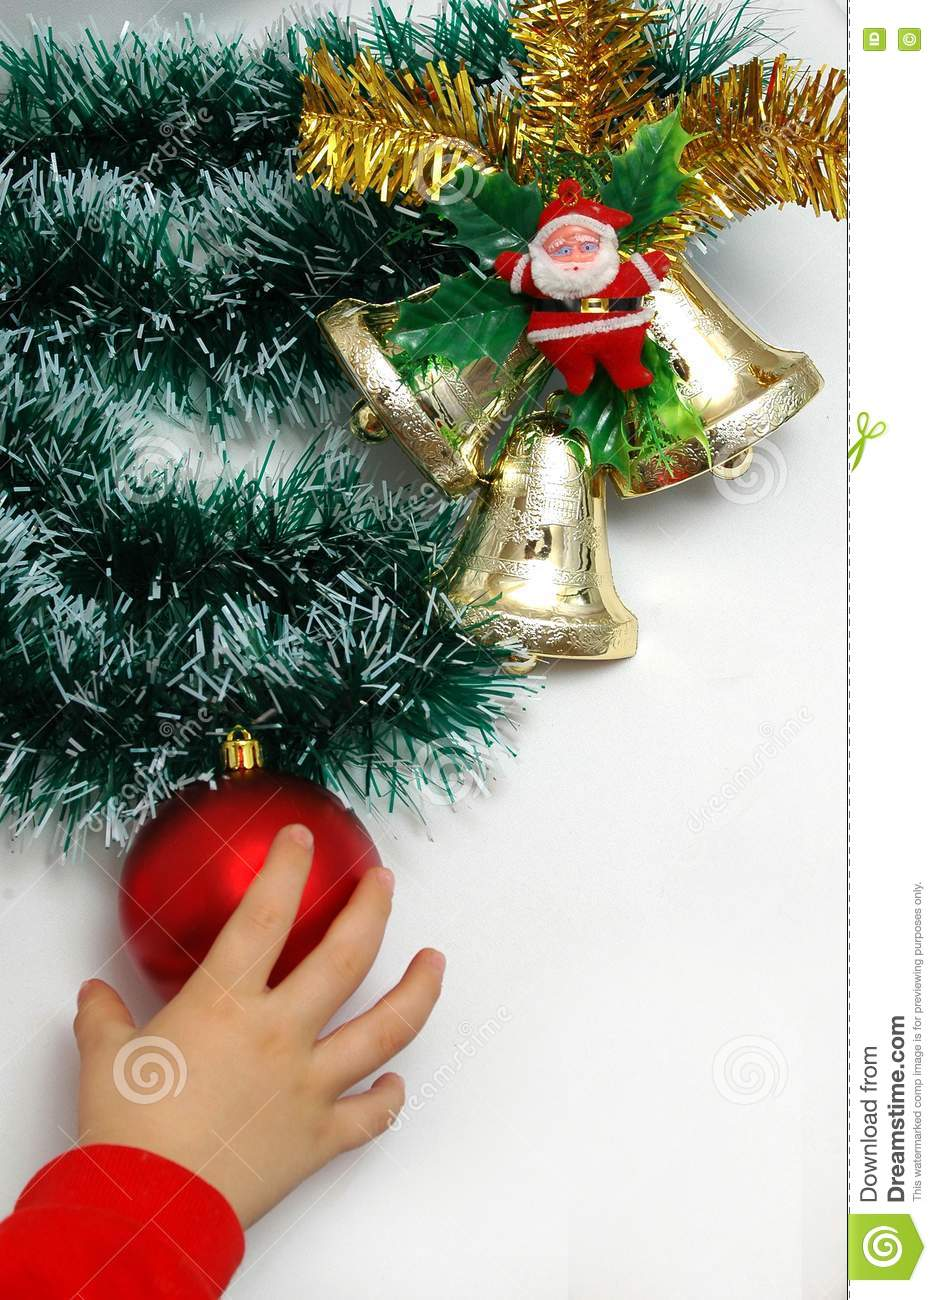 Handbells a red sphere and a bow Christmas decoration